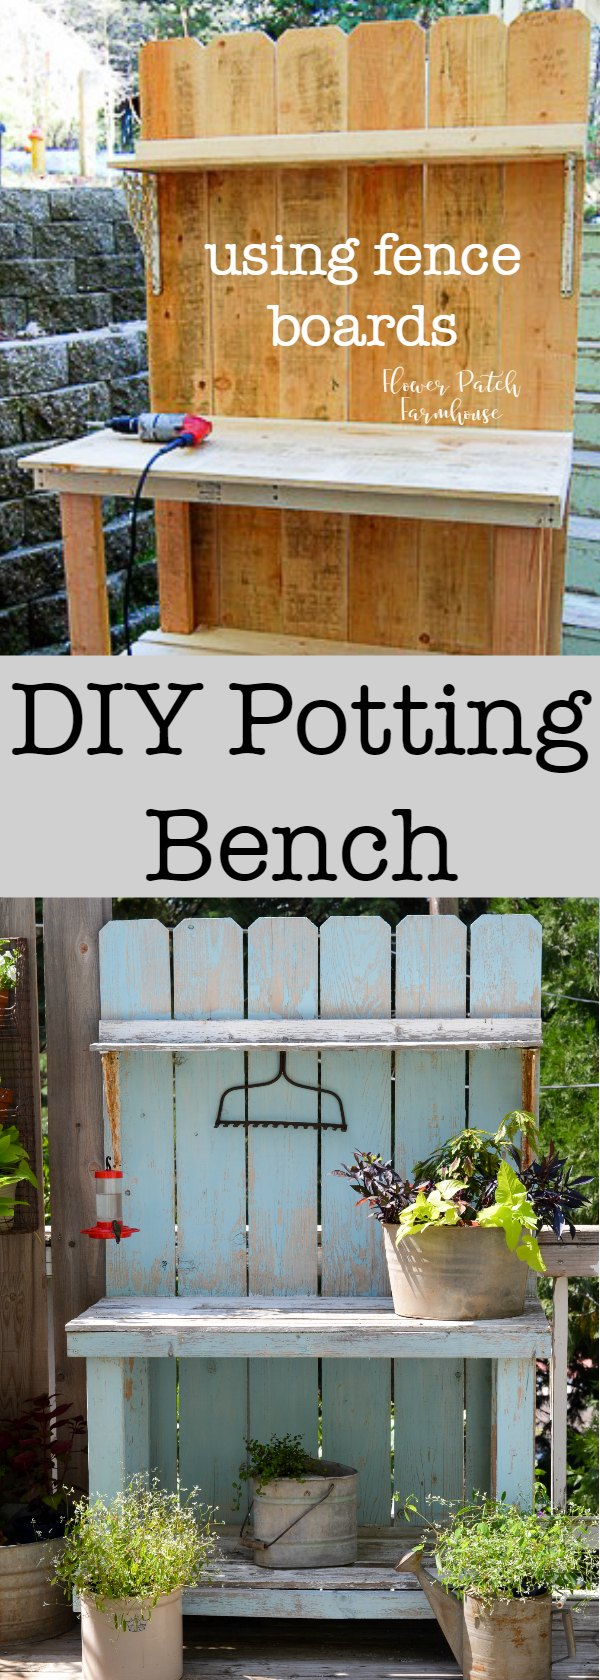 DIY Potting Bench using Fence boards.  A budget friendly DIY build that I use for many things, not just potting plants! Come see how we put this easy potting bench together for around $40